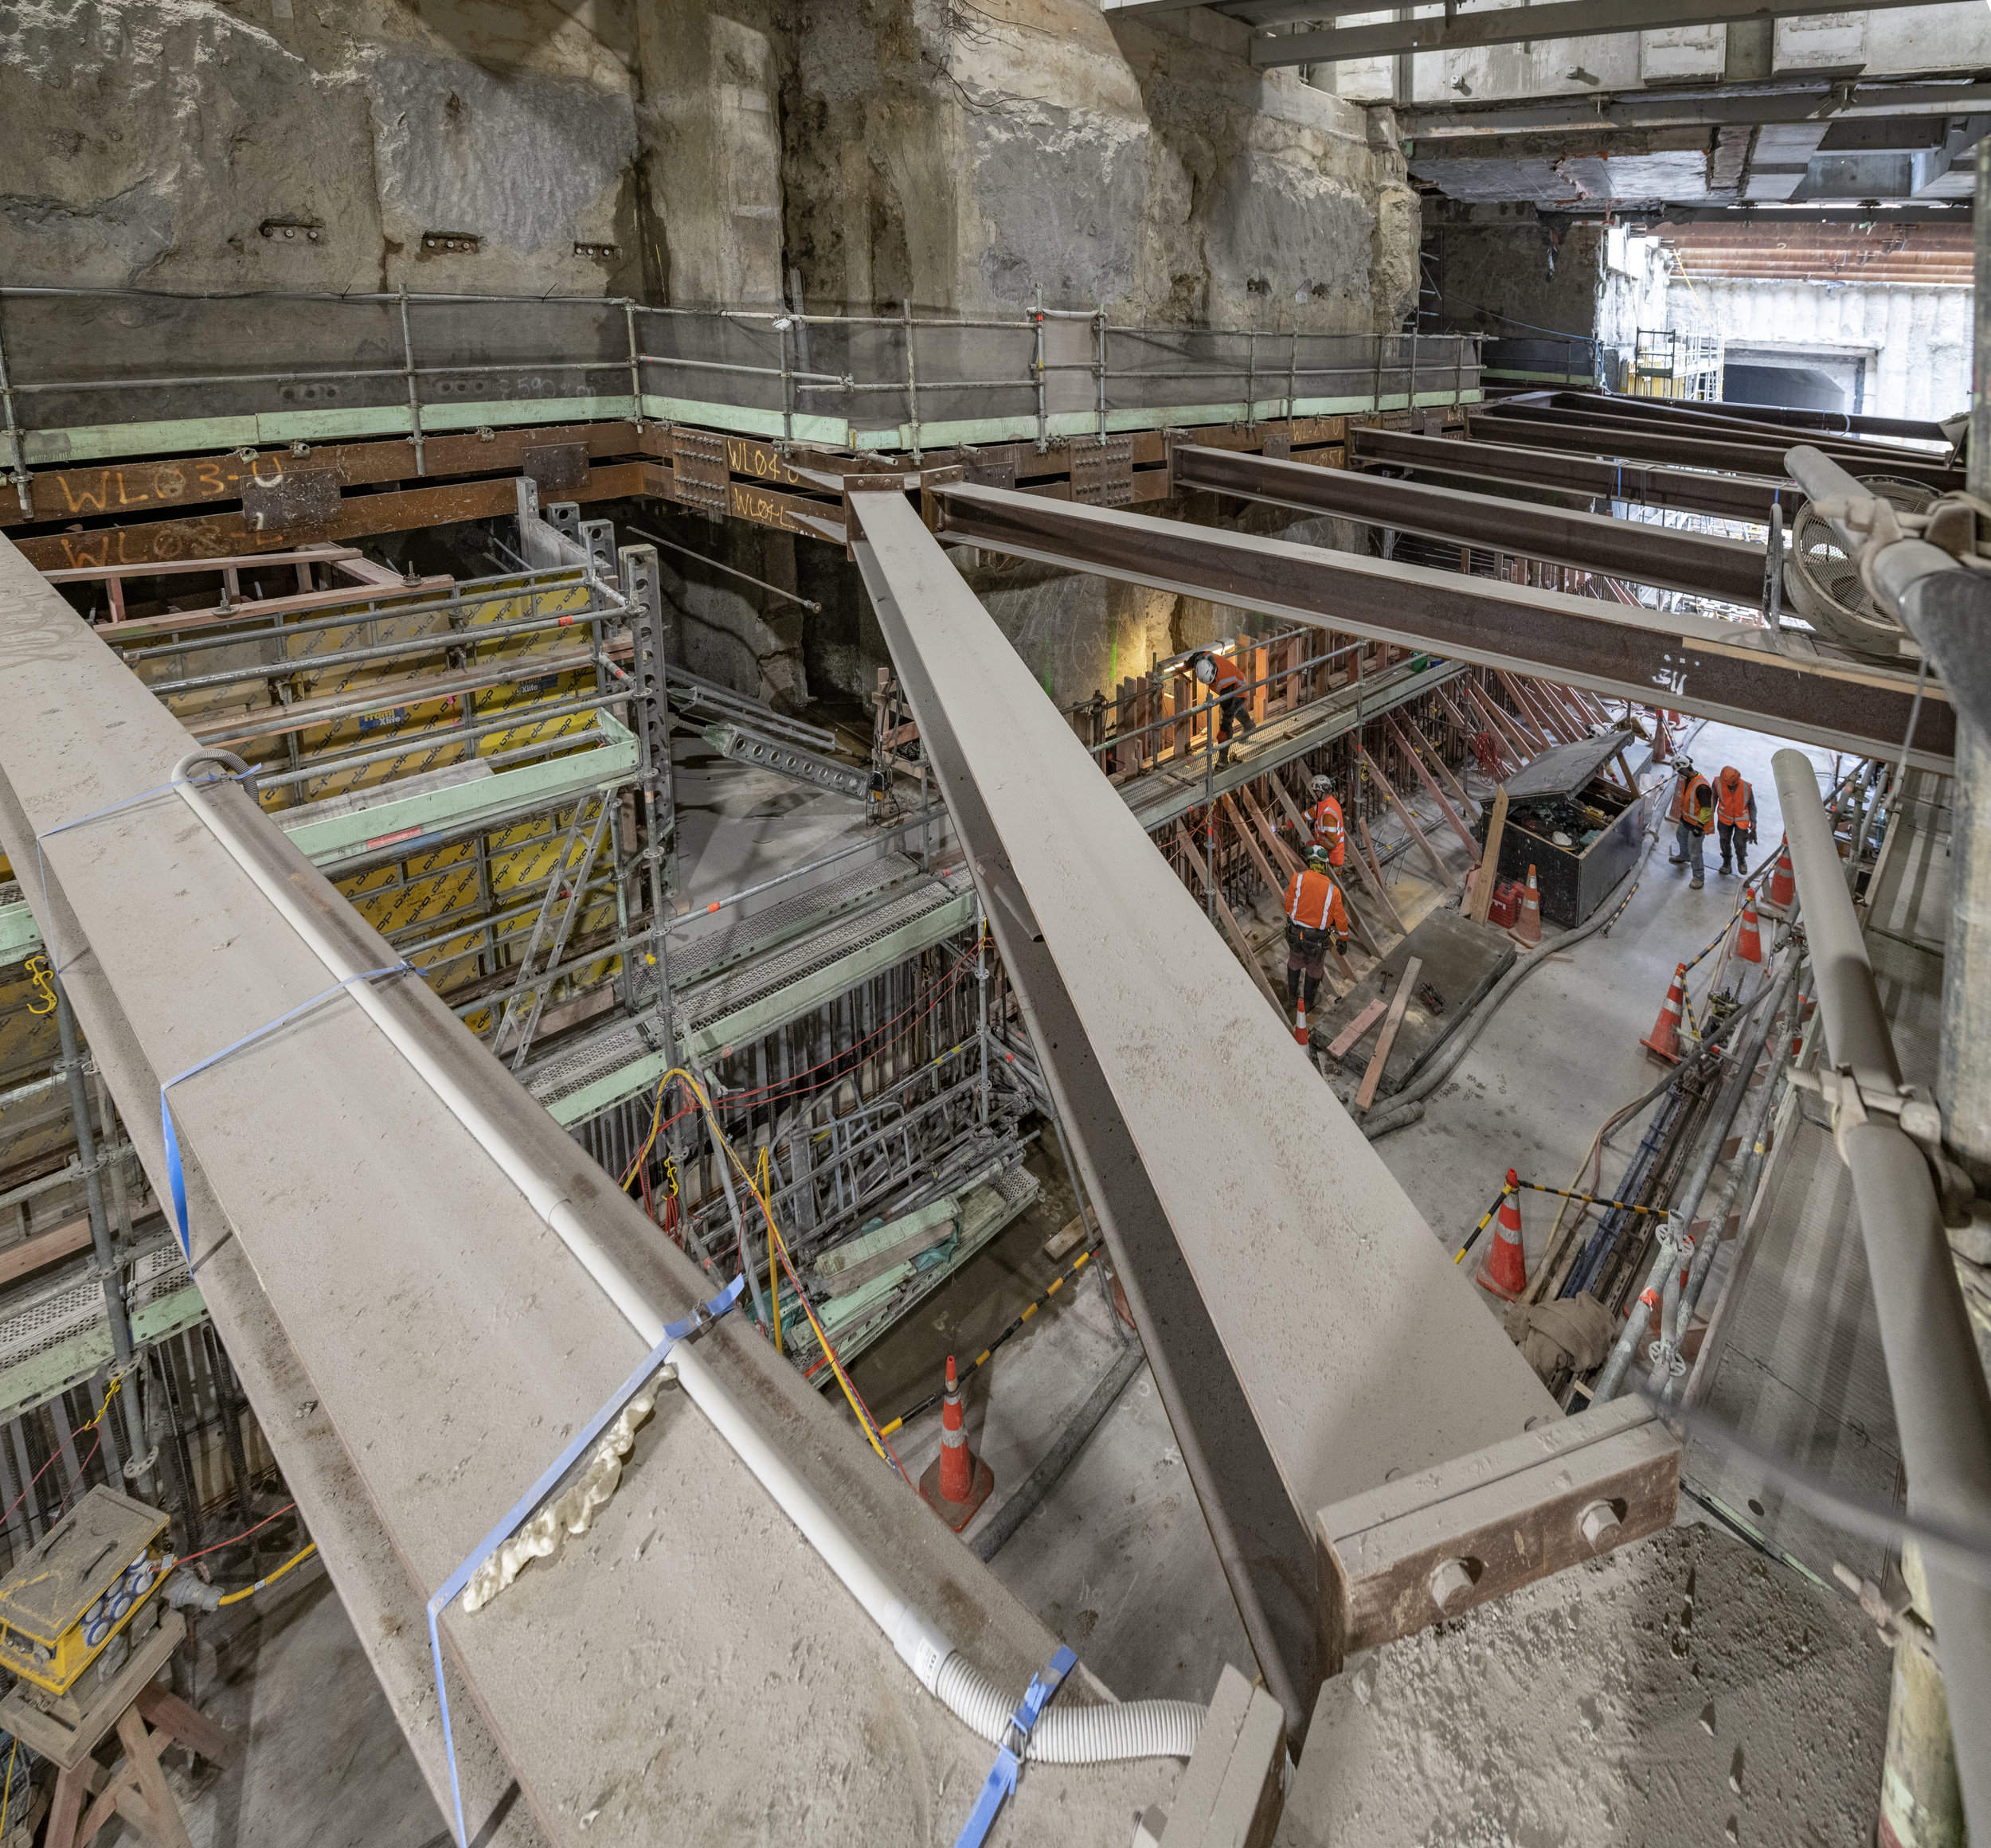 Lower Queen St tunnels 8 May 2019